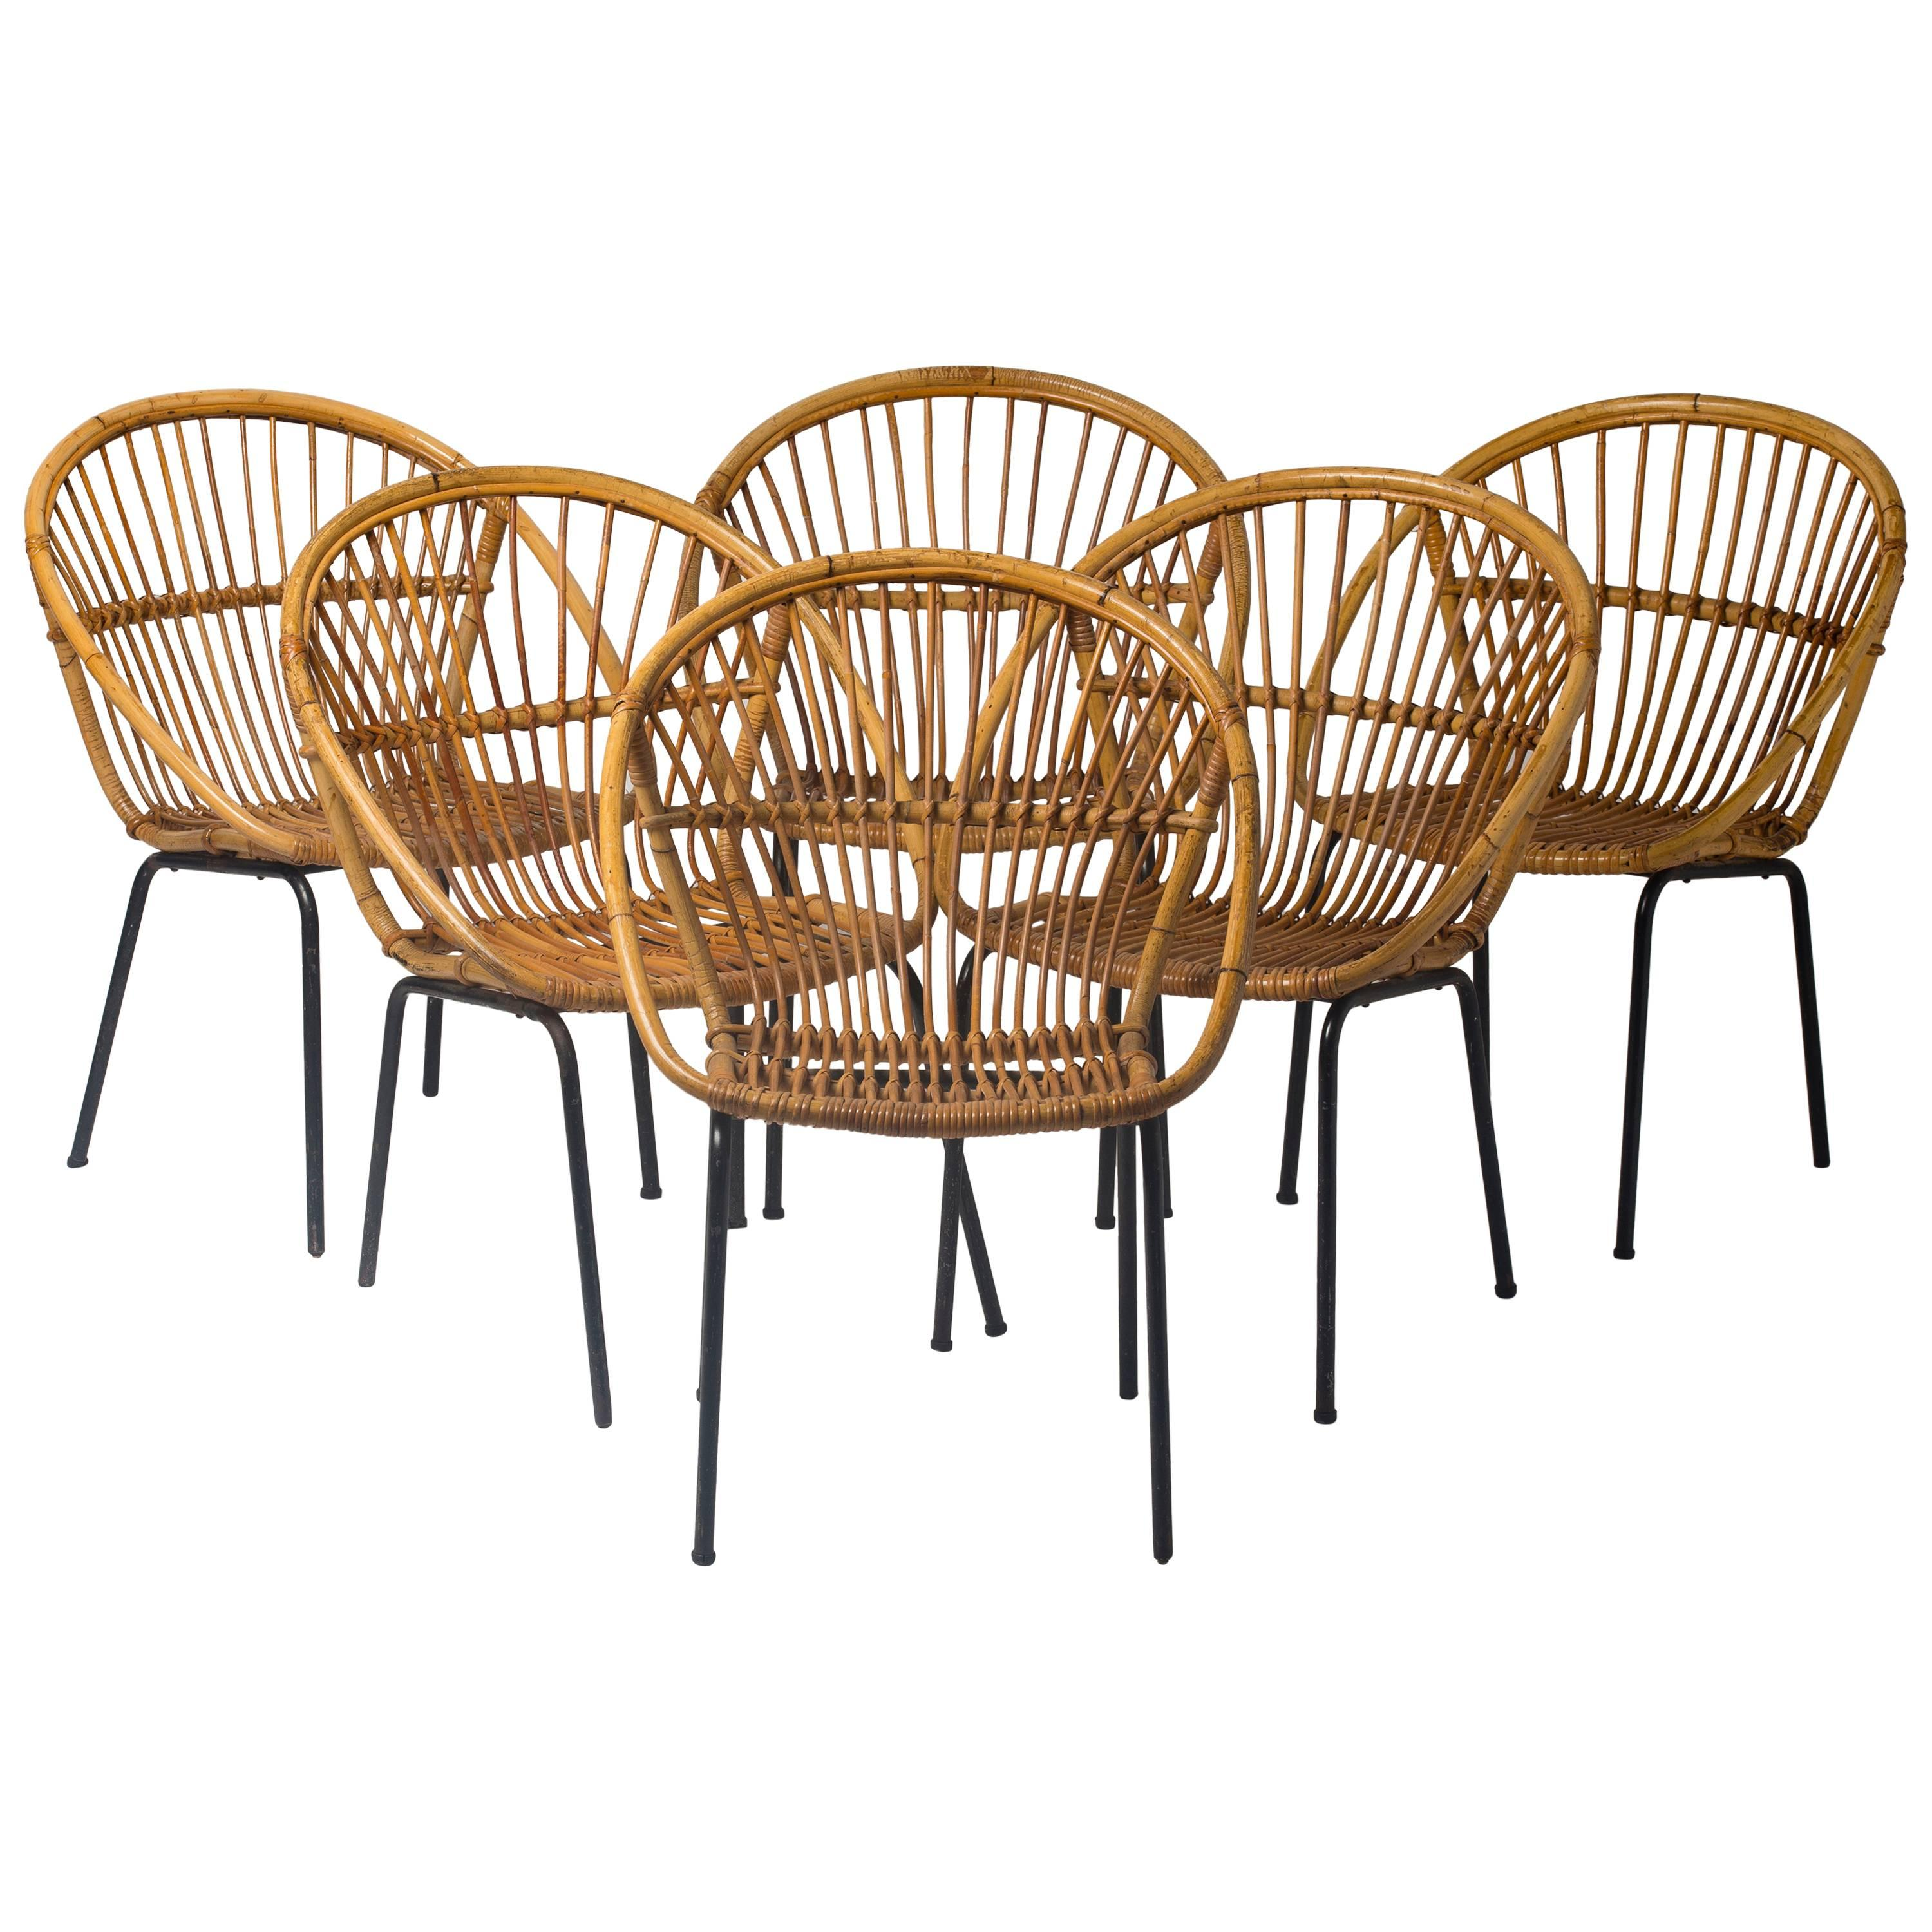 Set Of Six Rattan Chairs On Black Lacquered Iron Bases, Netherlands, 1950  Period For